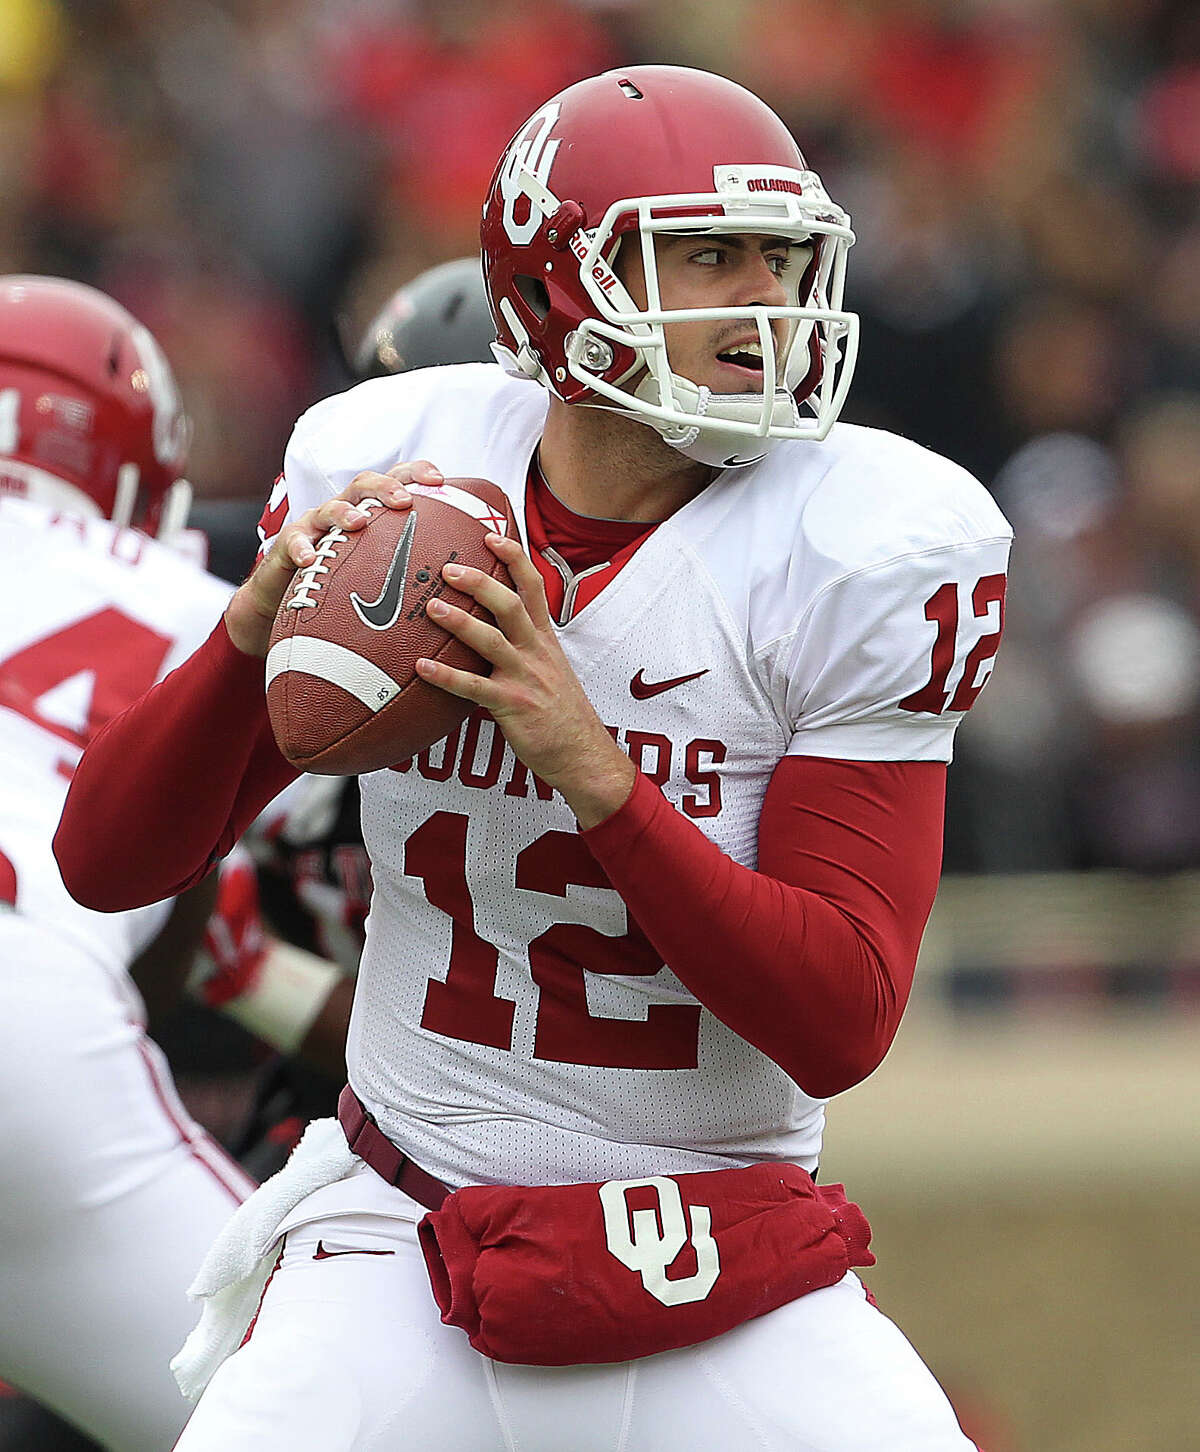 Oklahoma's Landry Jones looks to throw against Texas Tech during an NCAA college football game in Lubbock, Saturday, Oct. 6, 2012.